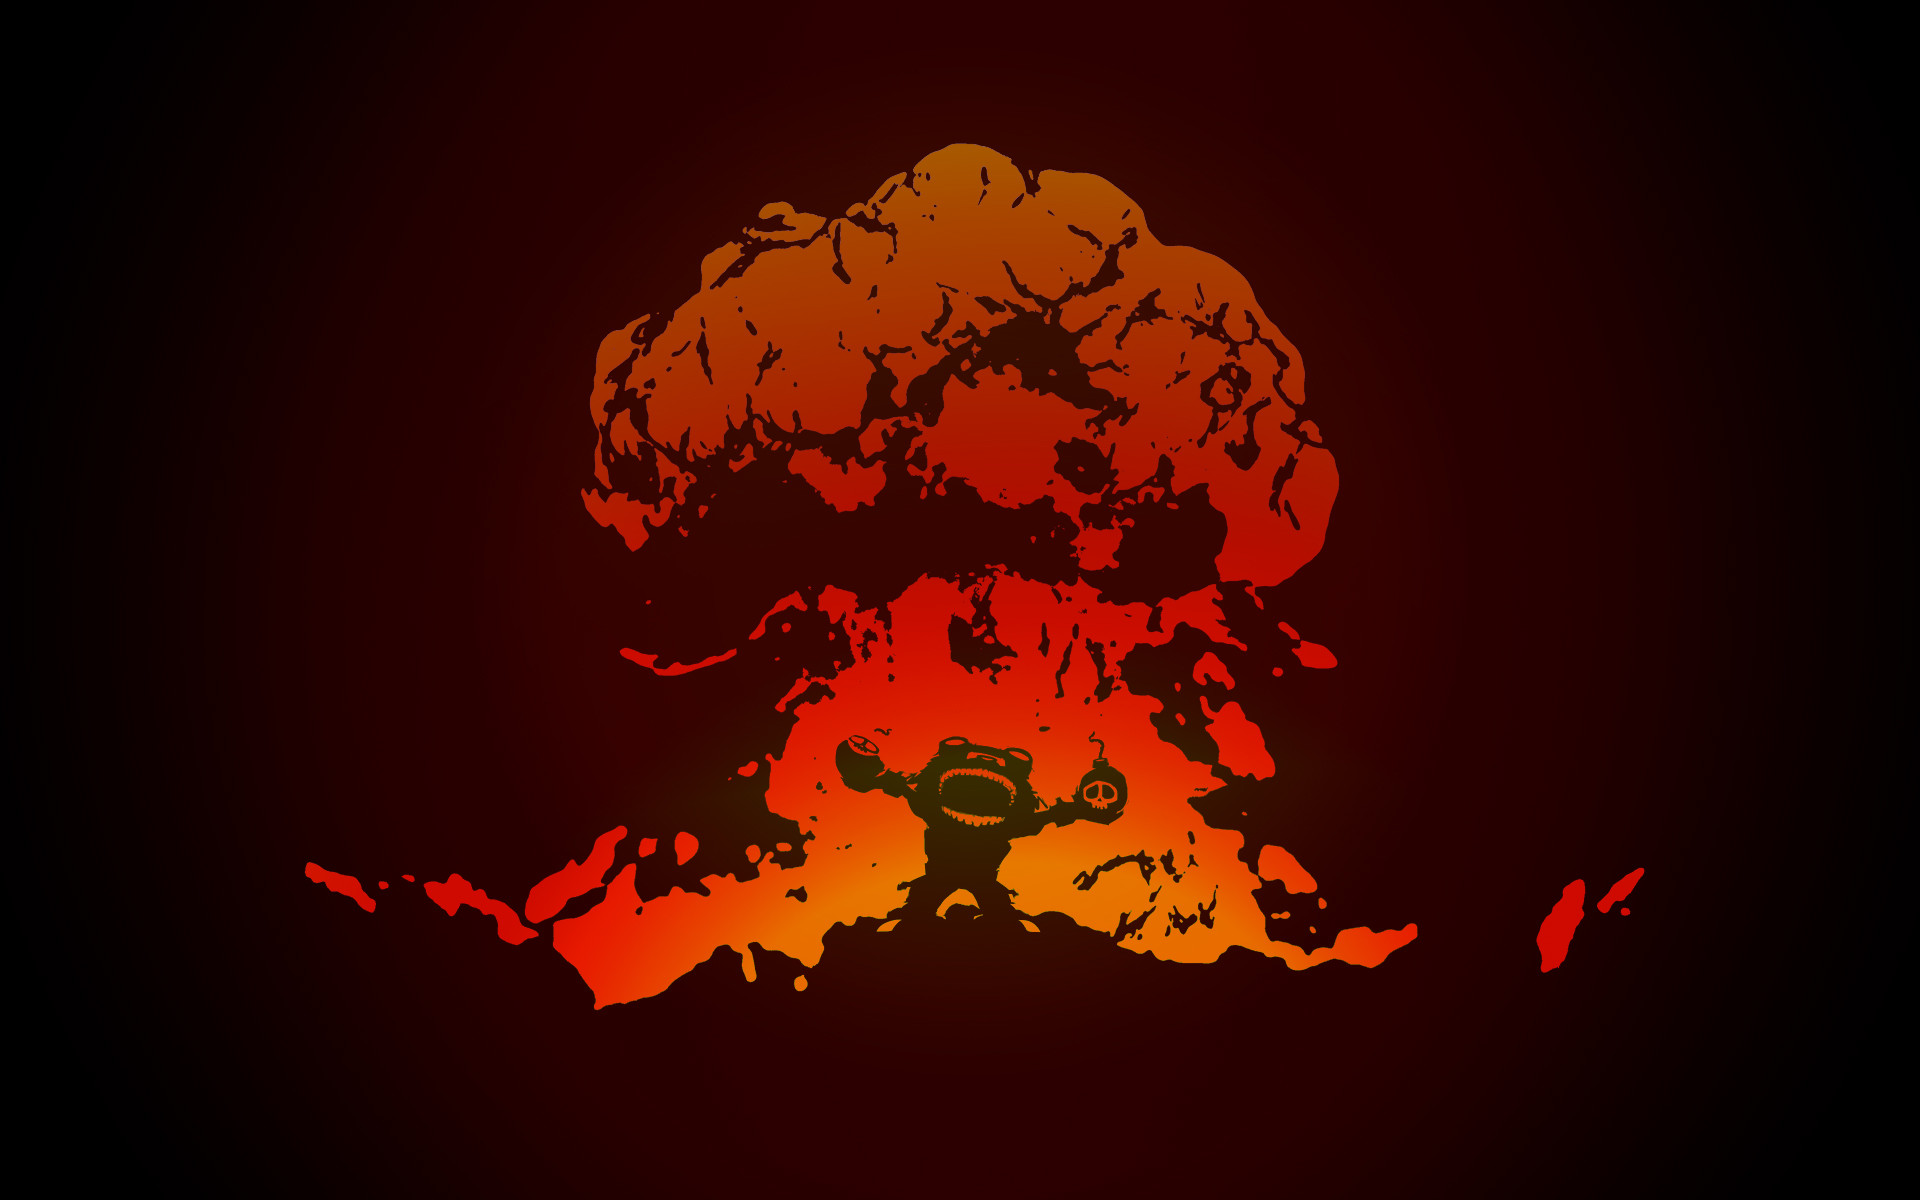 1920x1200 League of Legends Teemo Explosion Mushroom Cloud wallpaper |  |  166960 | WallpaperUP